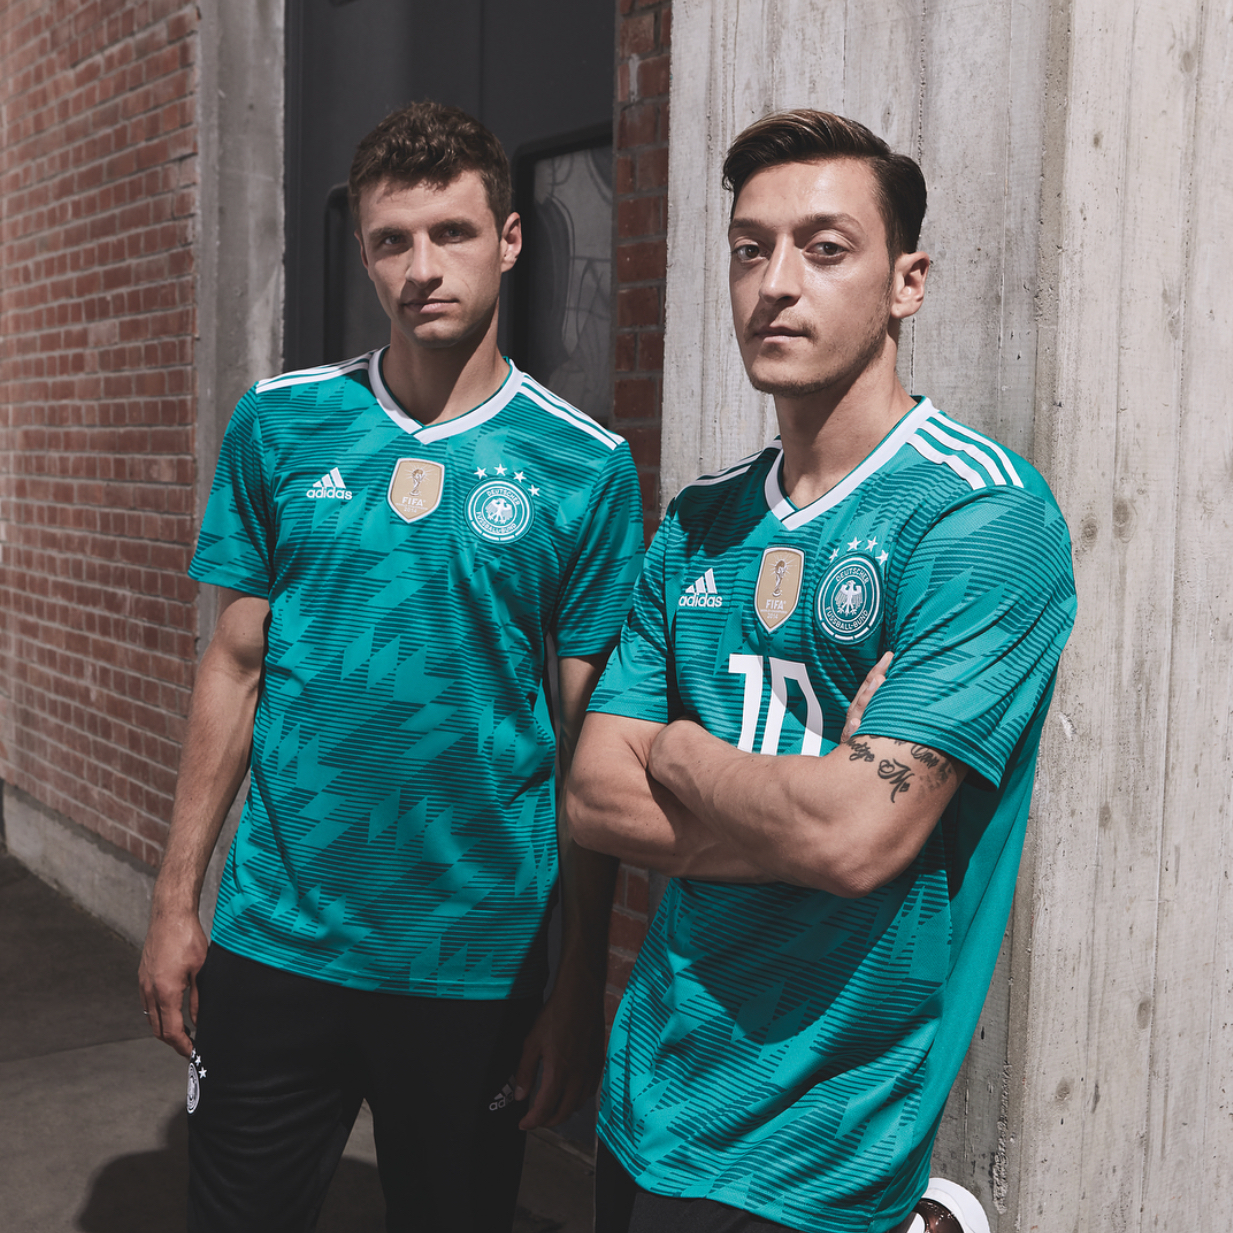 Guide to Getting Cheap World Cup Jerseys